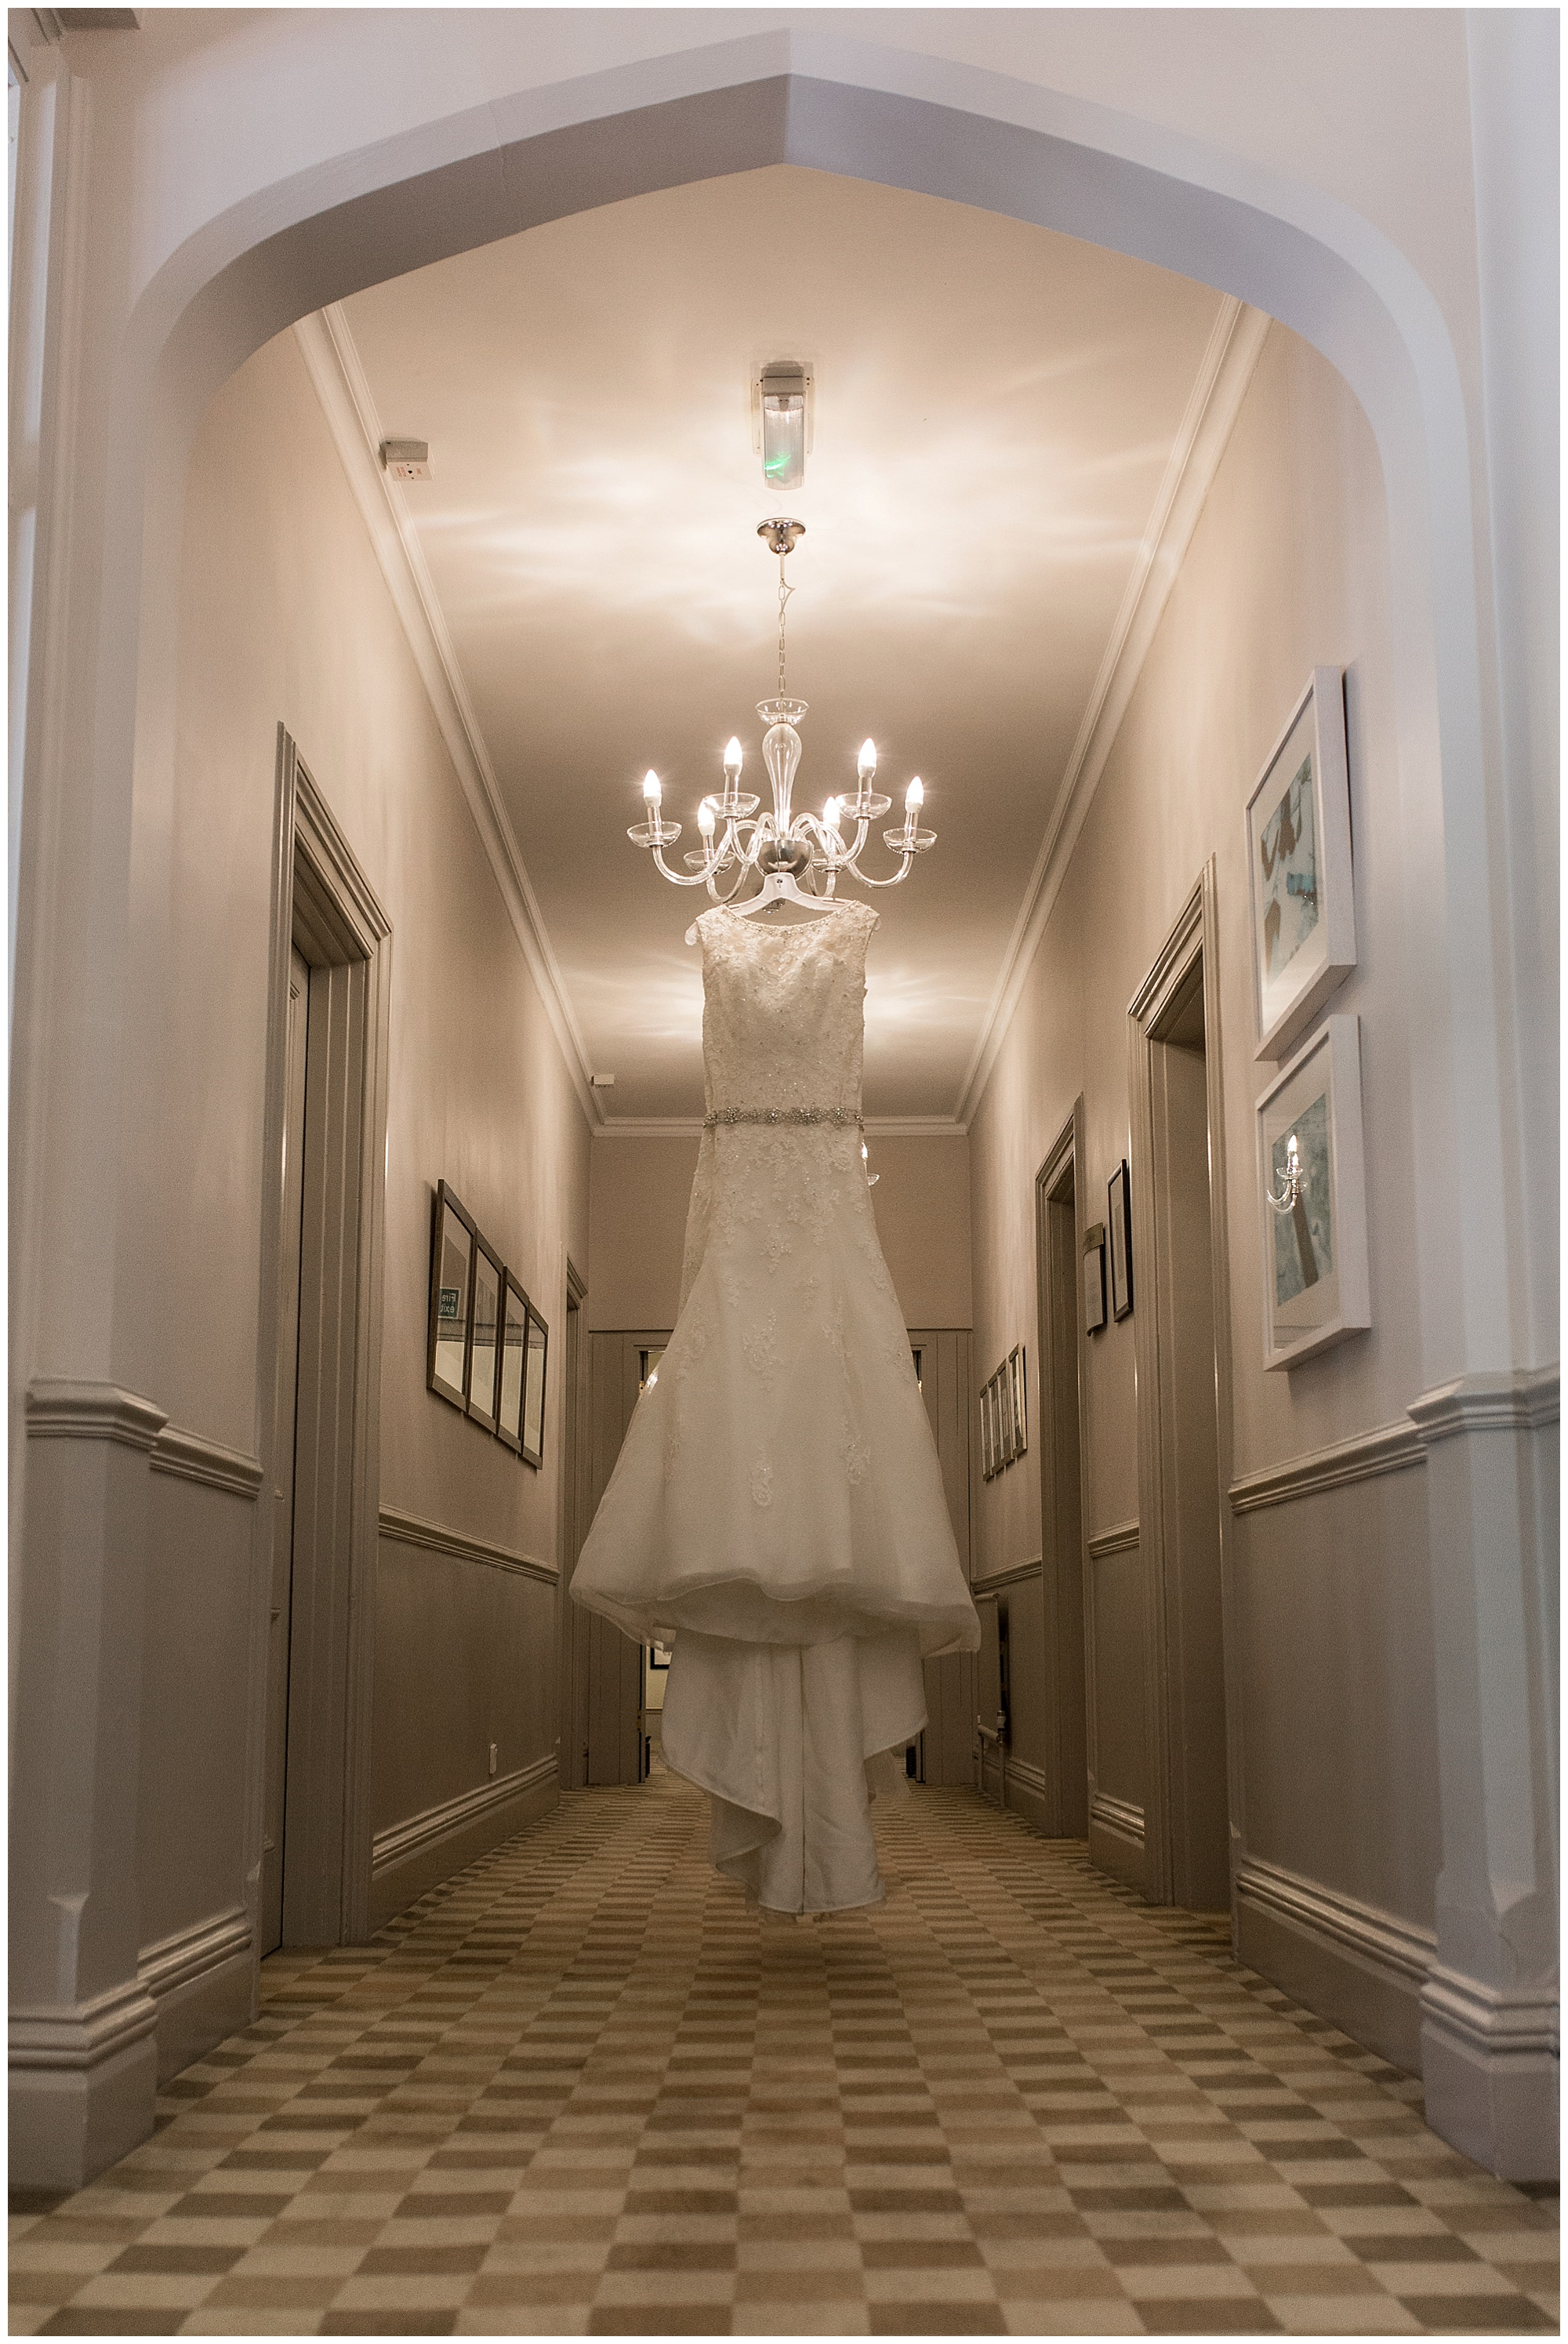 wedding dress hanging from lights in a corridor